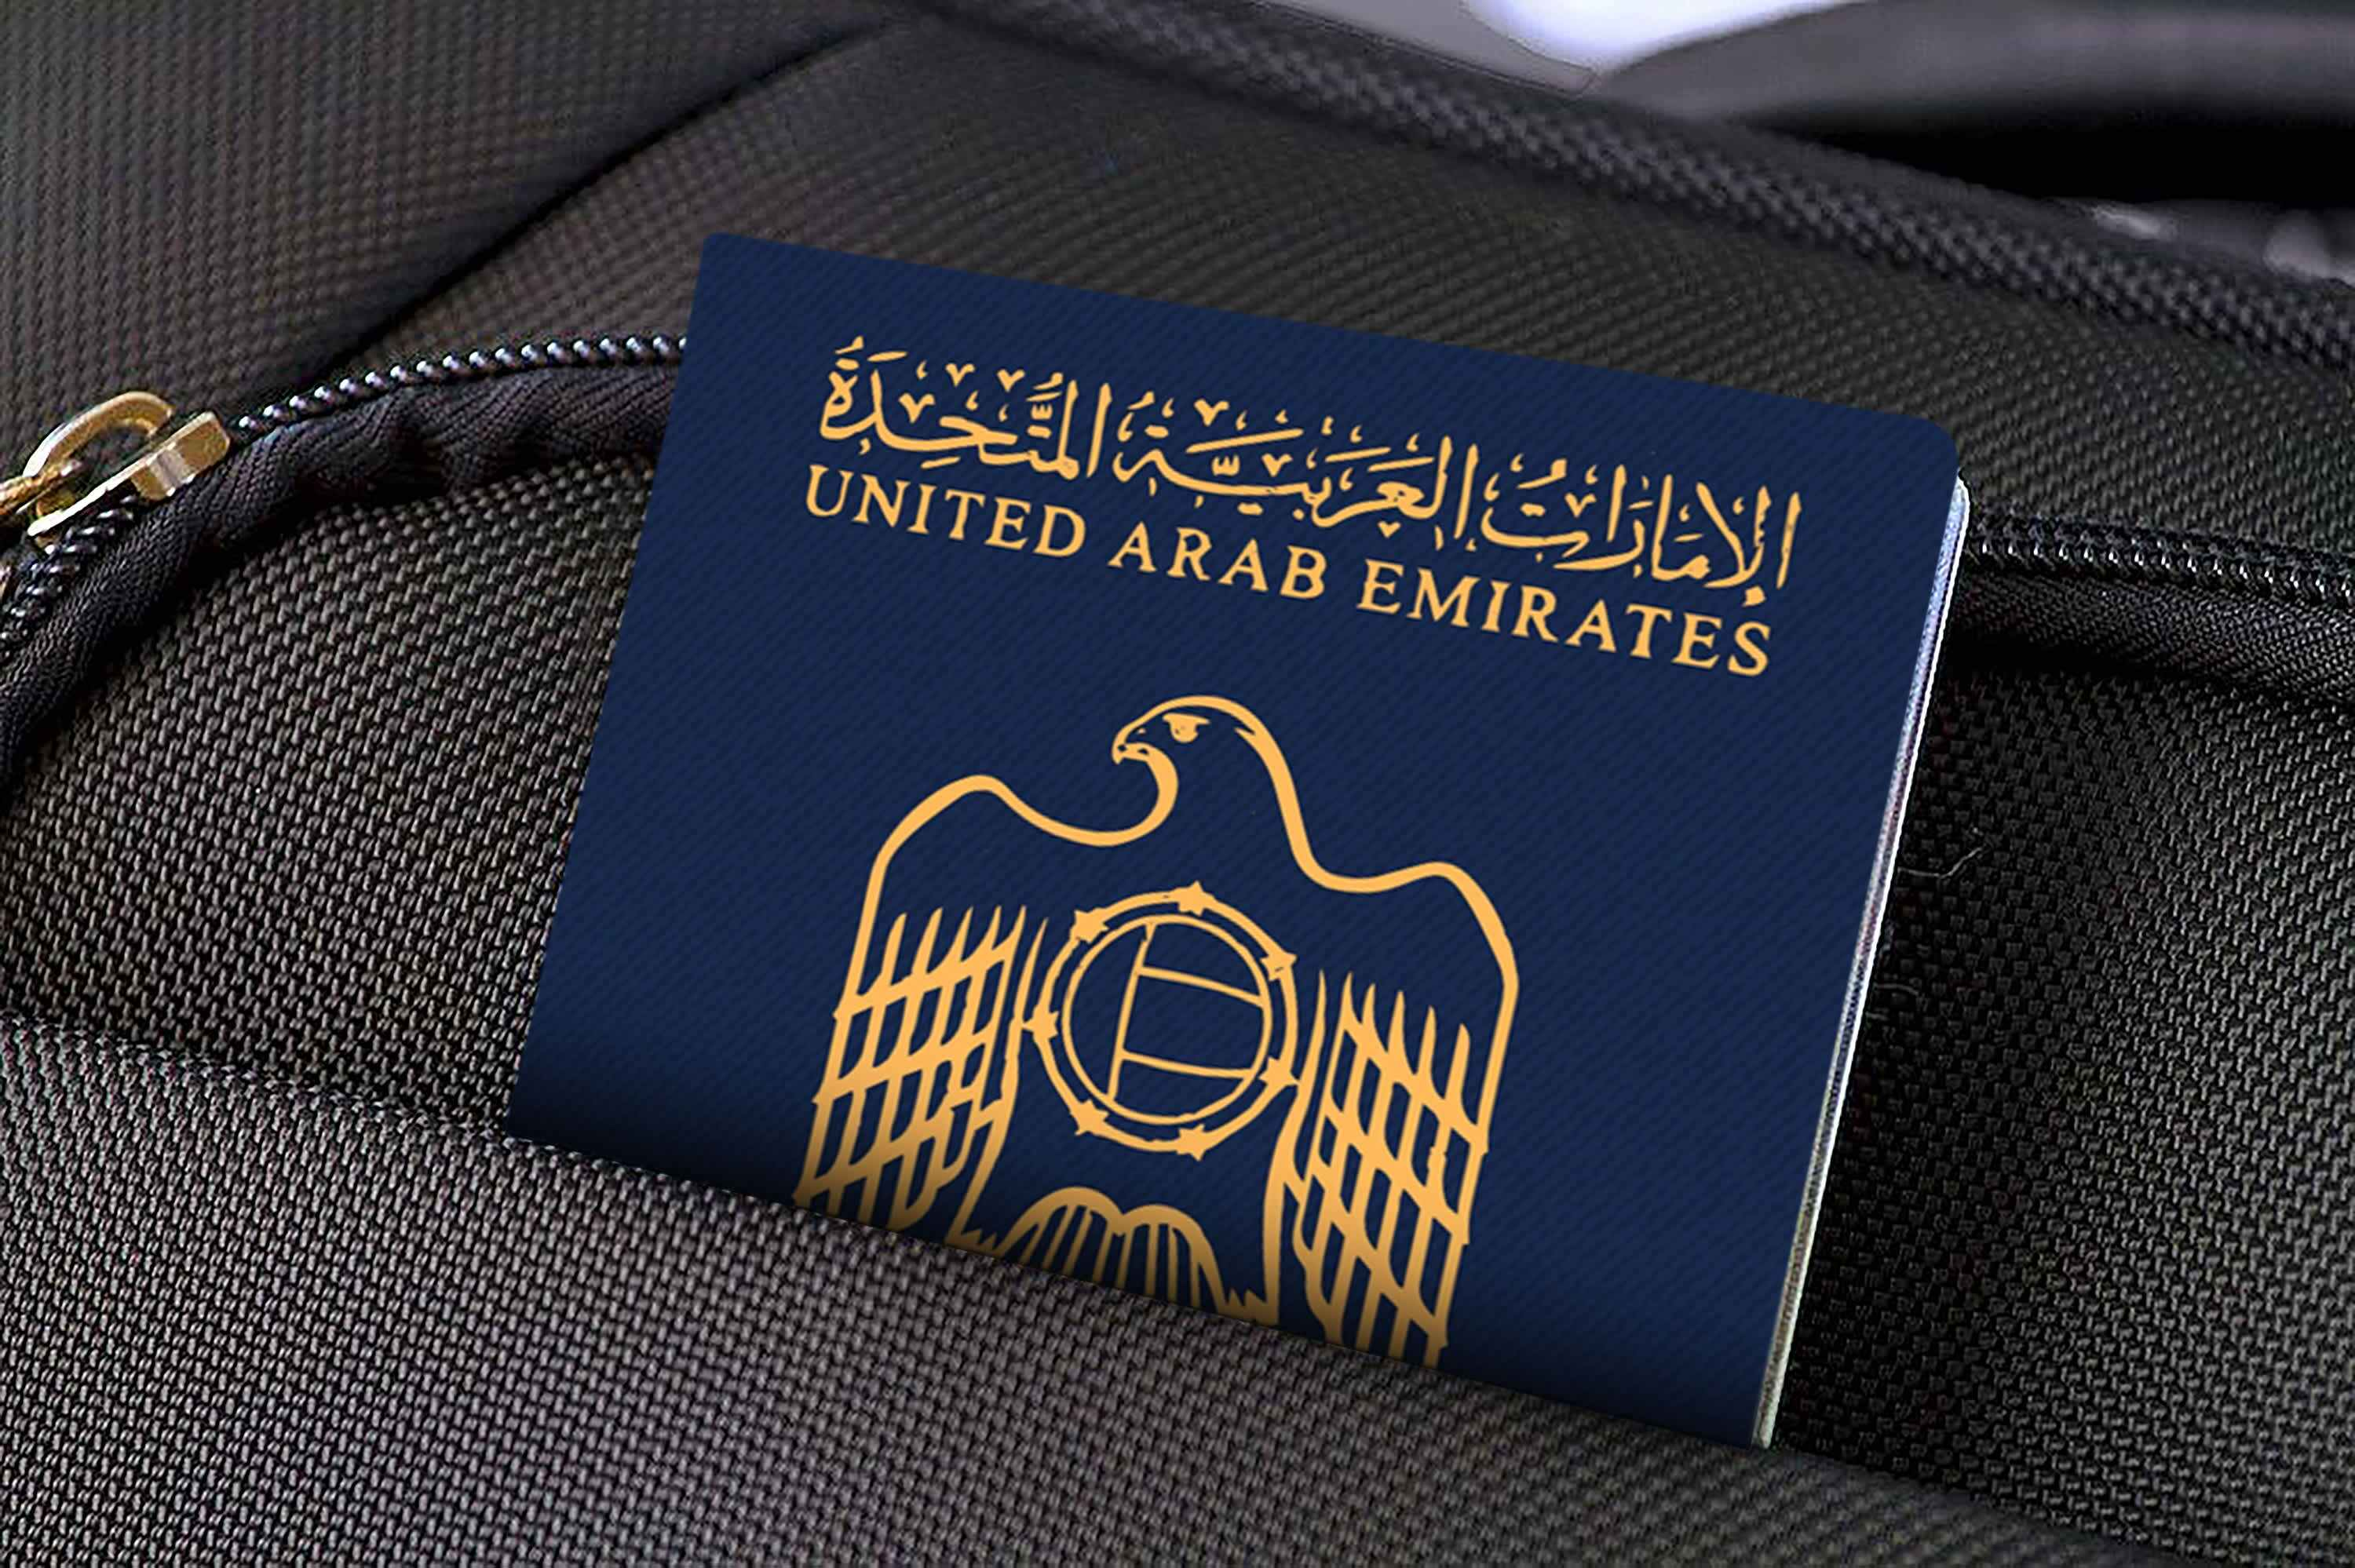 UAE to offer citizenship to 'talented' foreigners